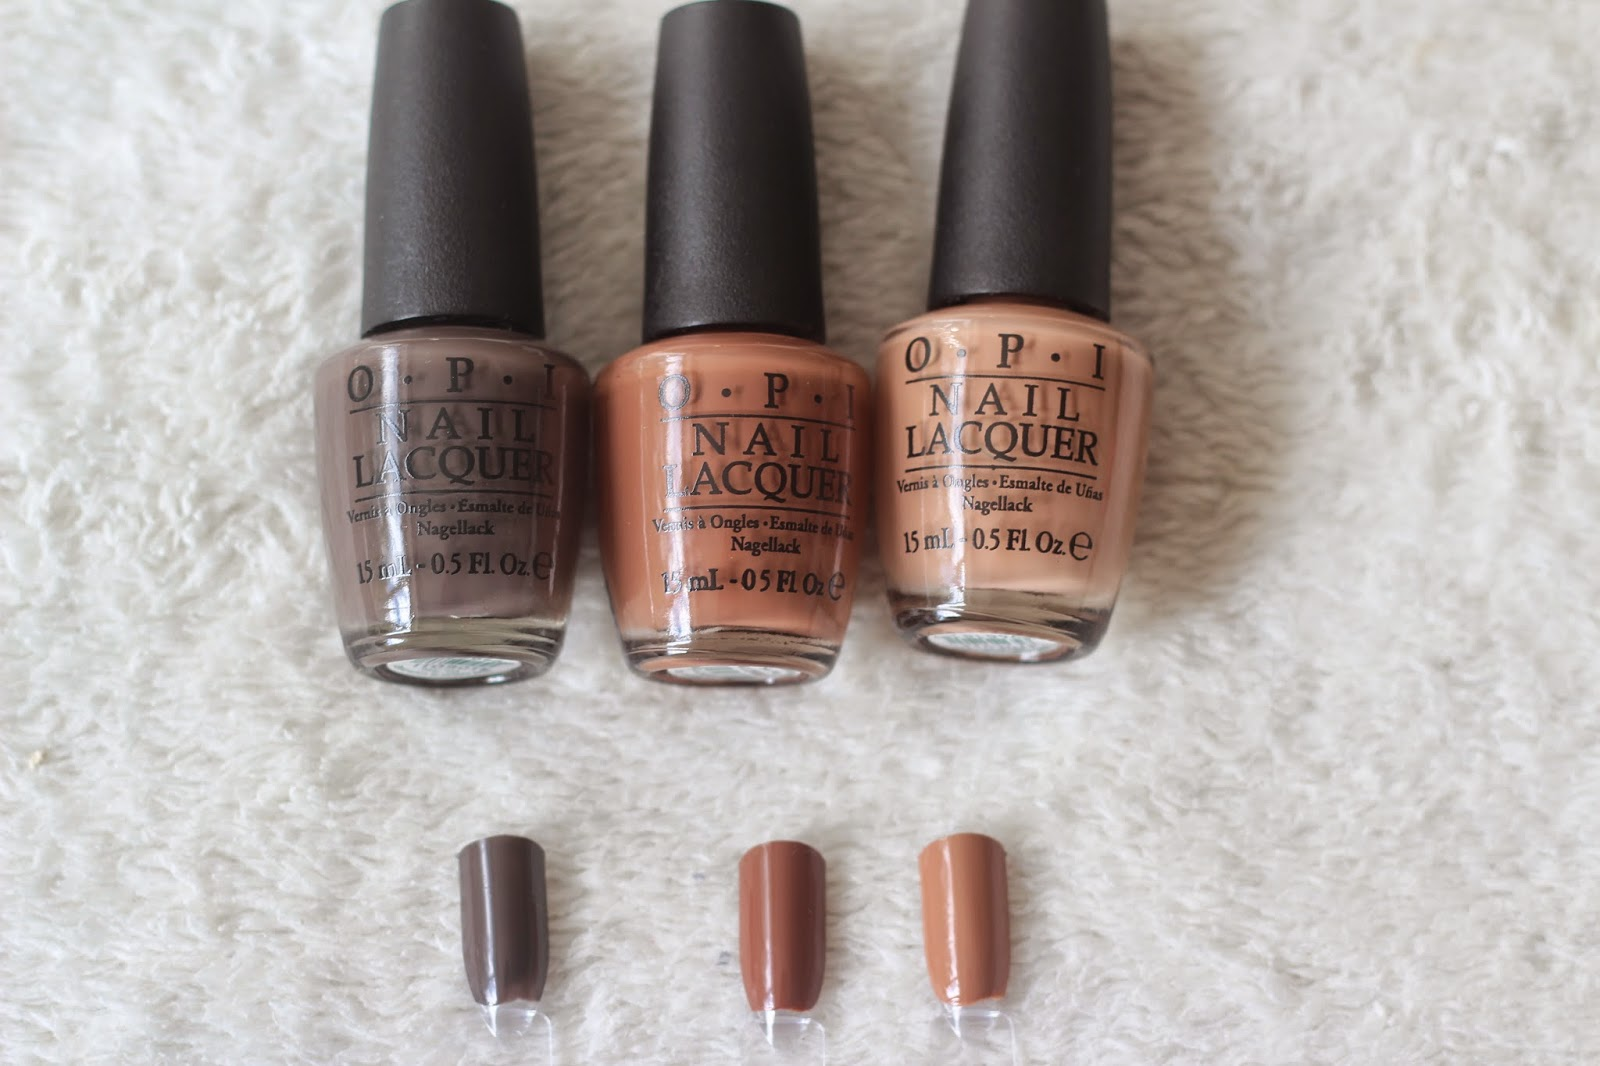 OPI Nordic Collection A/W '14